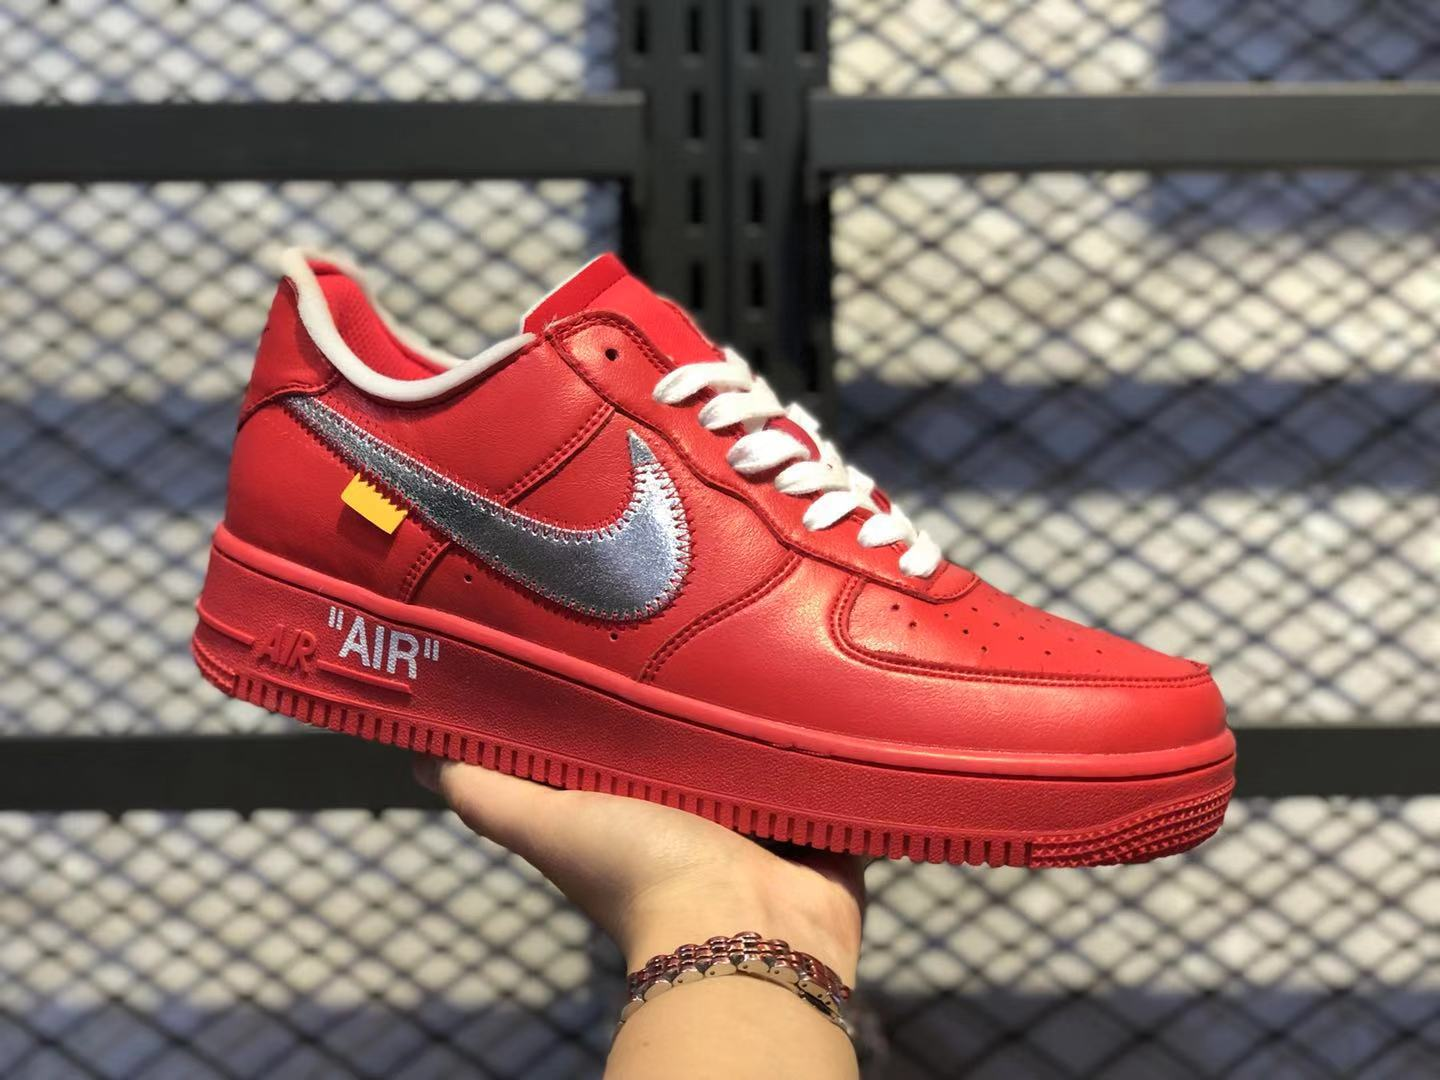 OFF-White x Nike Air Force 1 OW Gym Red/White-Silver Casual Shoes Discount